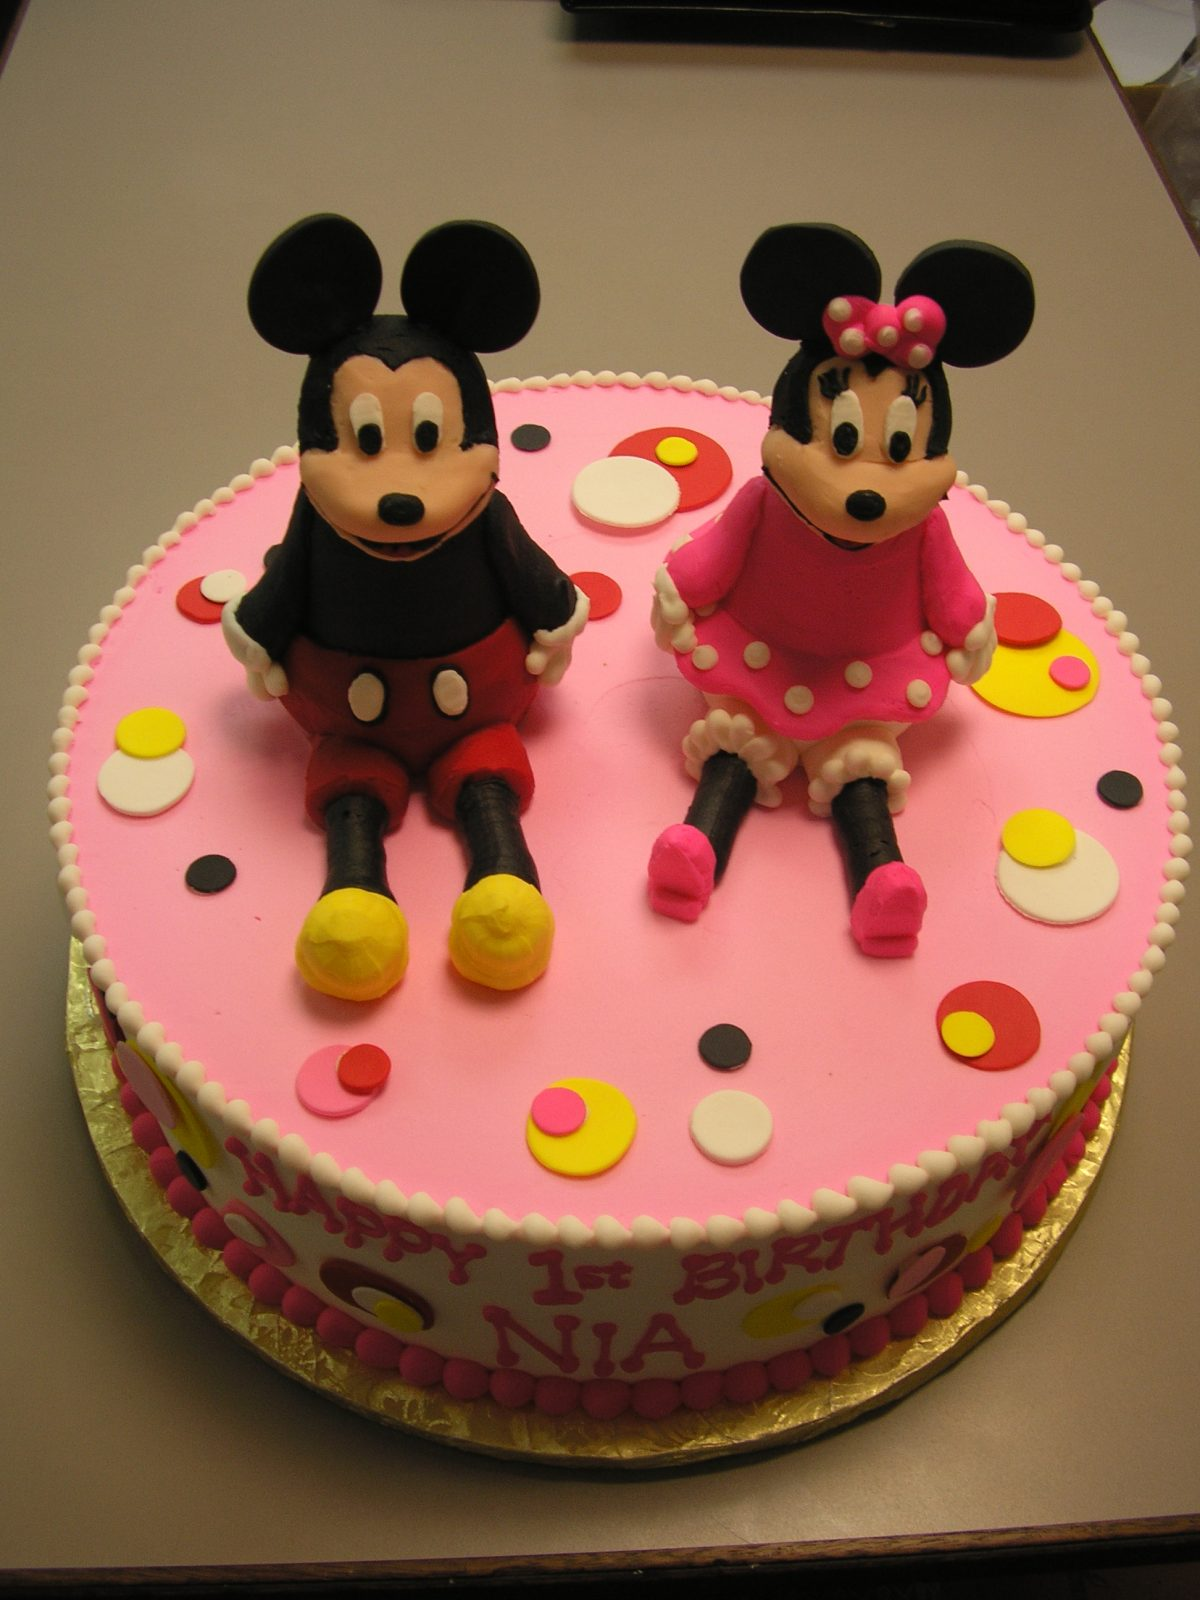 3D mickey and minnie cake